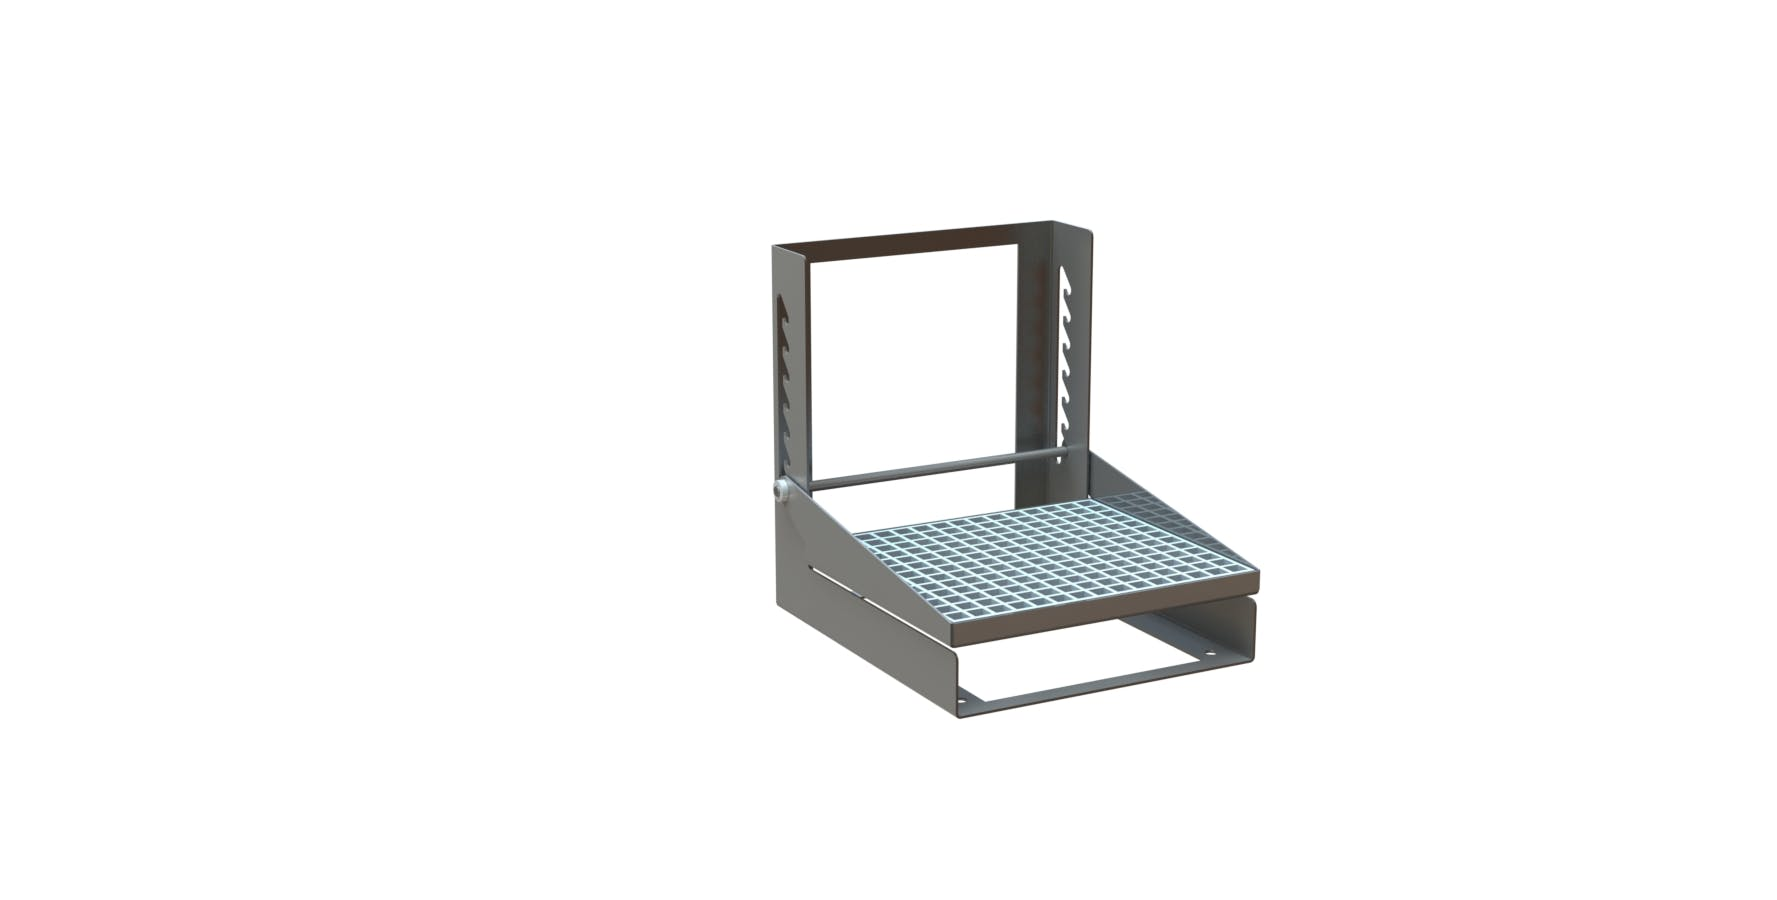 ERG-200 Ergonomic Stand Equipment stand sold by Fusion Tech Integrated Inc.